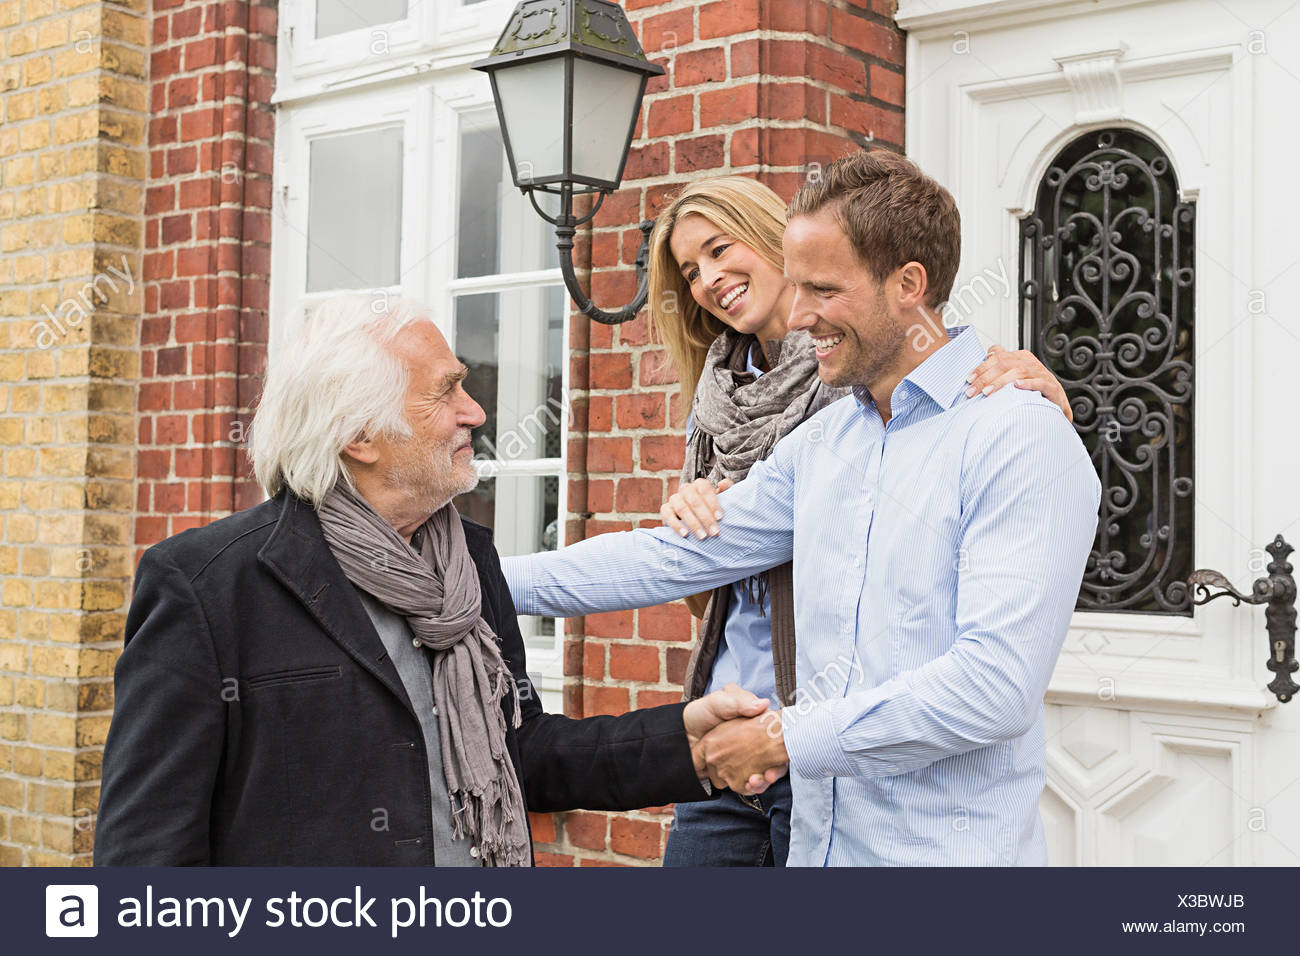 Mid adult couple by front door, senior man shaking hands - Stock Image